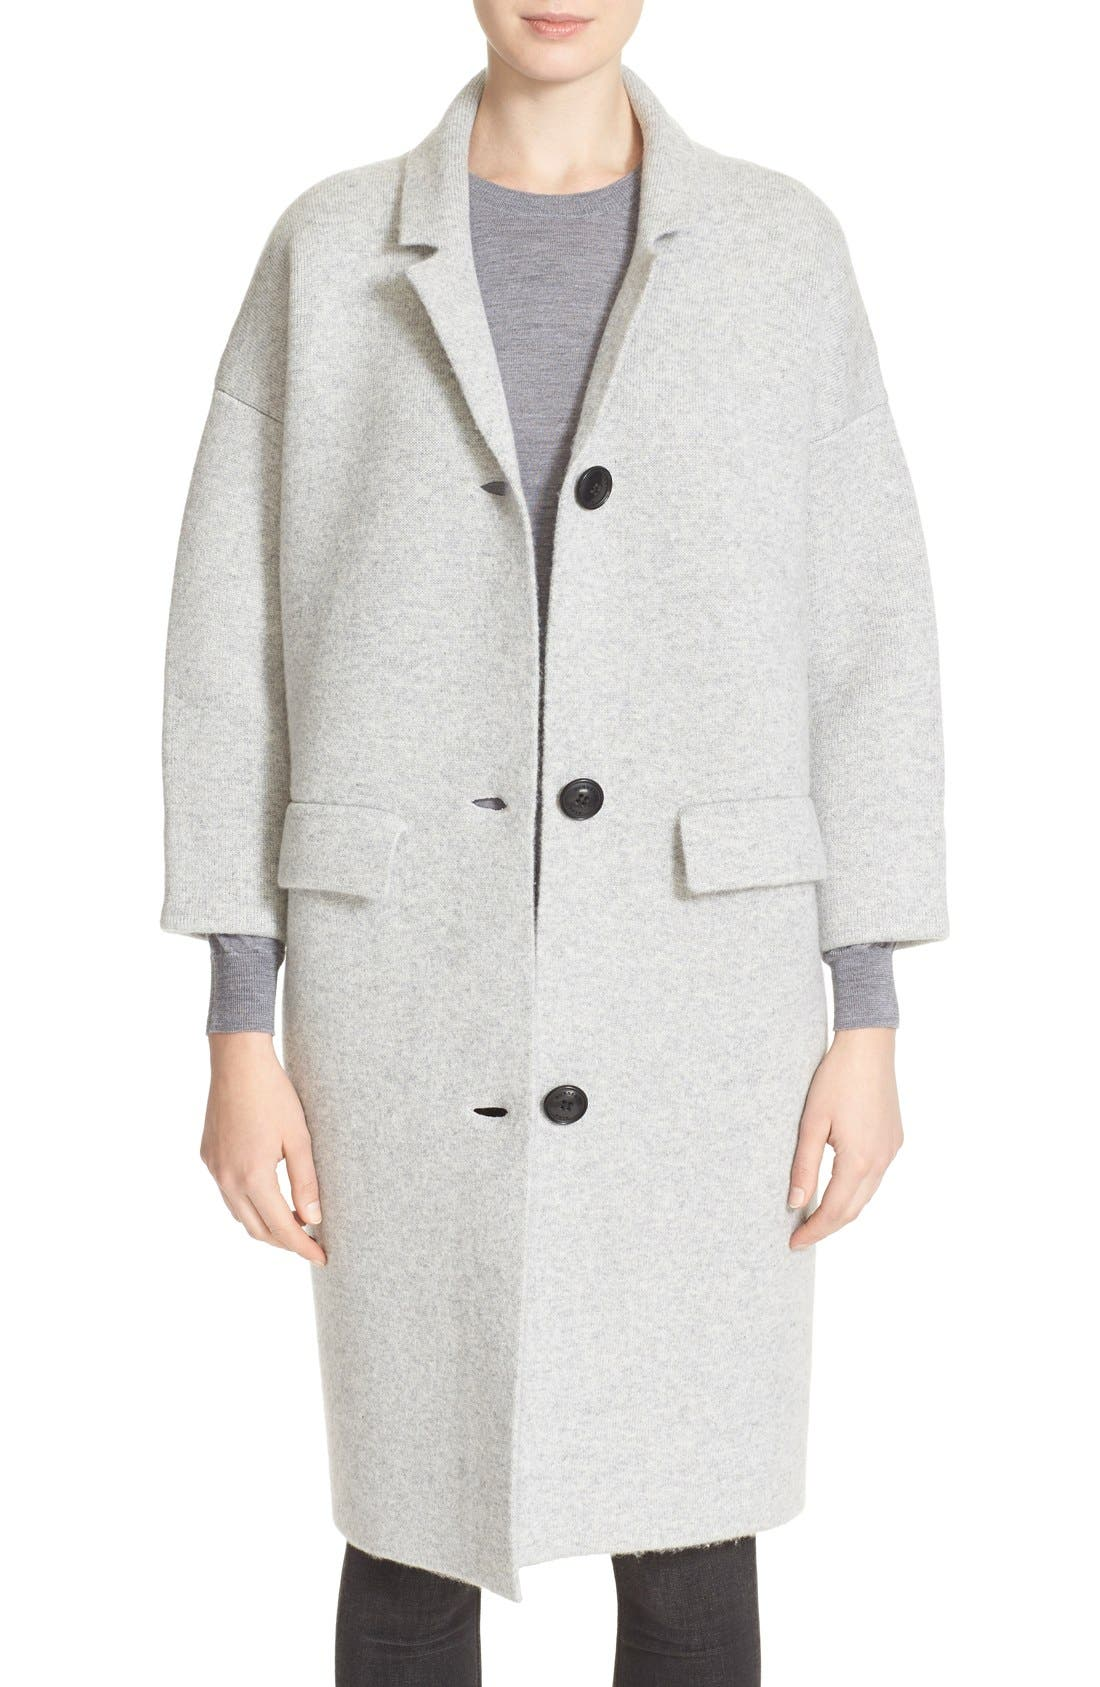 Alternate Image 1 Selected - Burberry Brit Wool & Cashmere Knit Long Coat